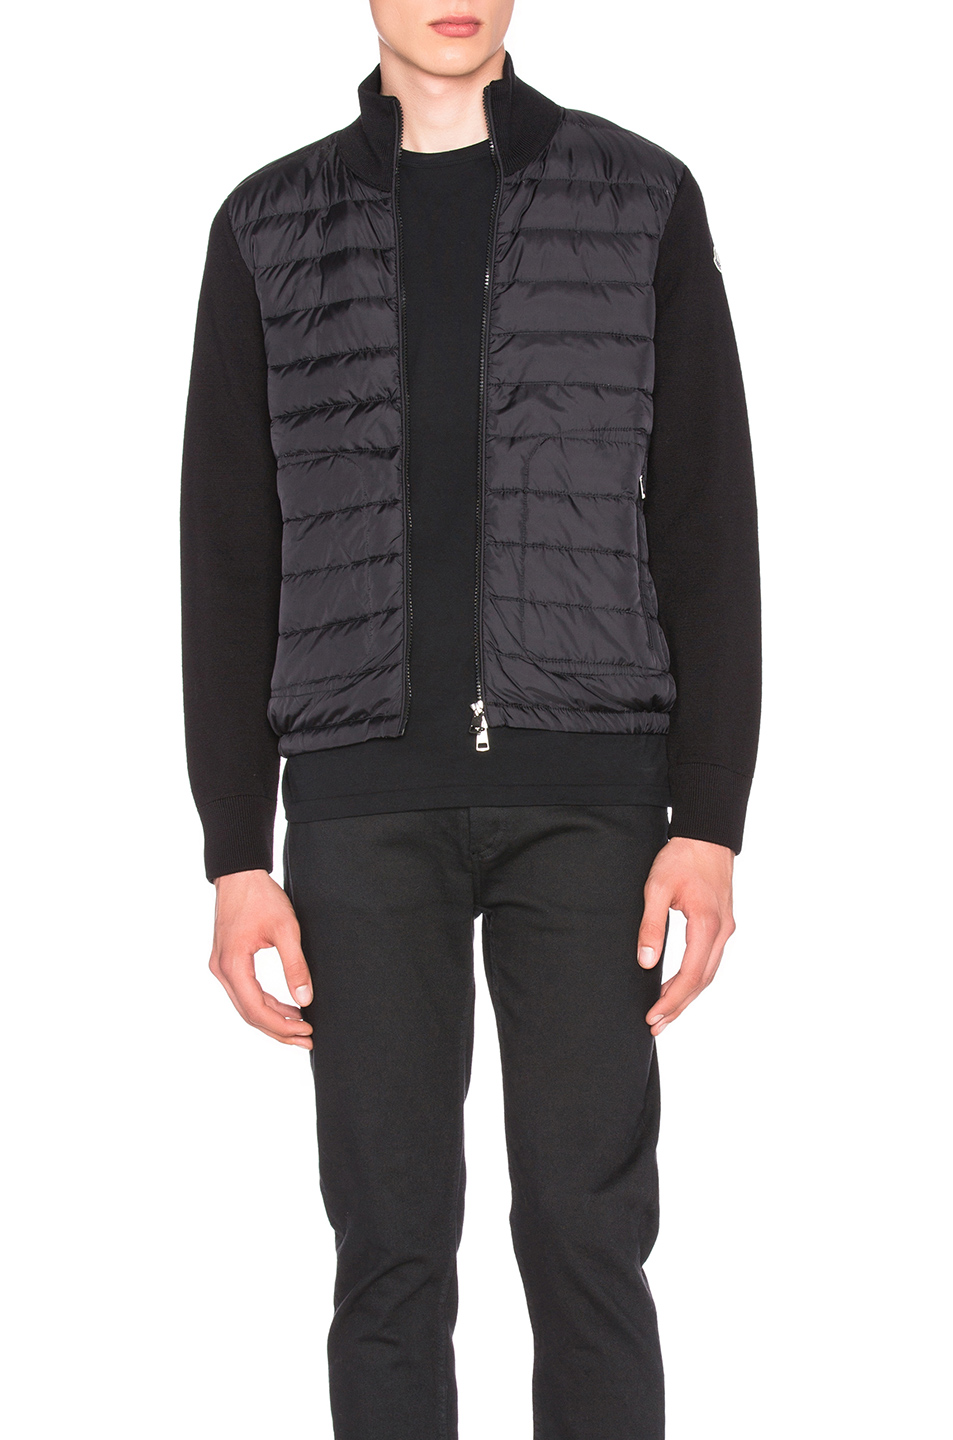 MONCLER Cardigan Sweater in Black